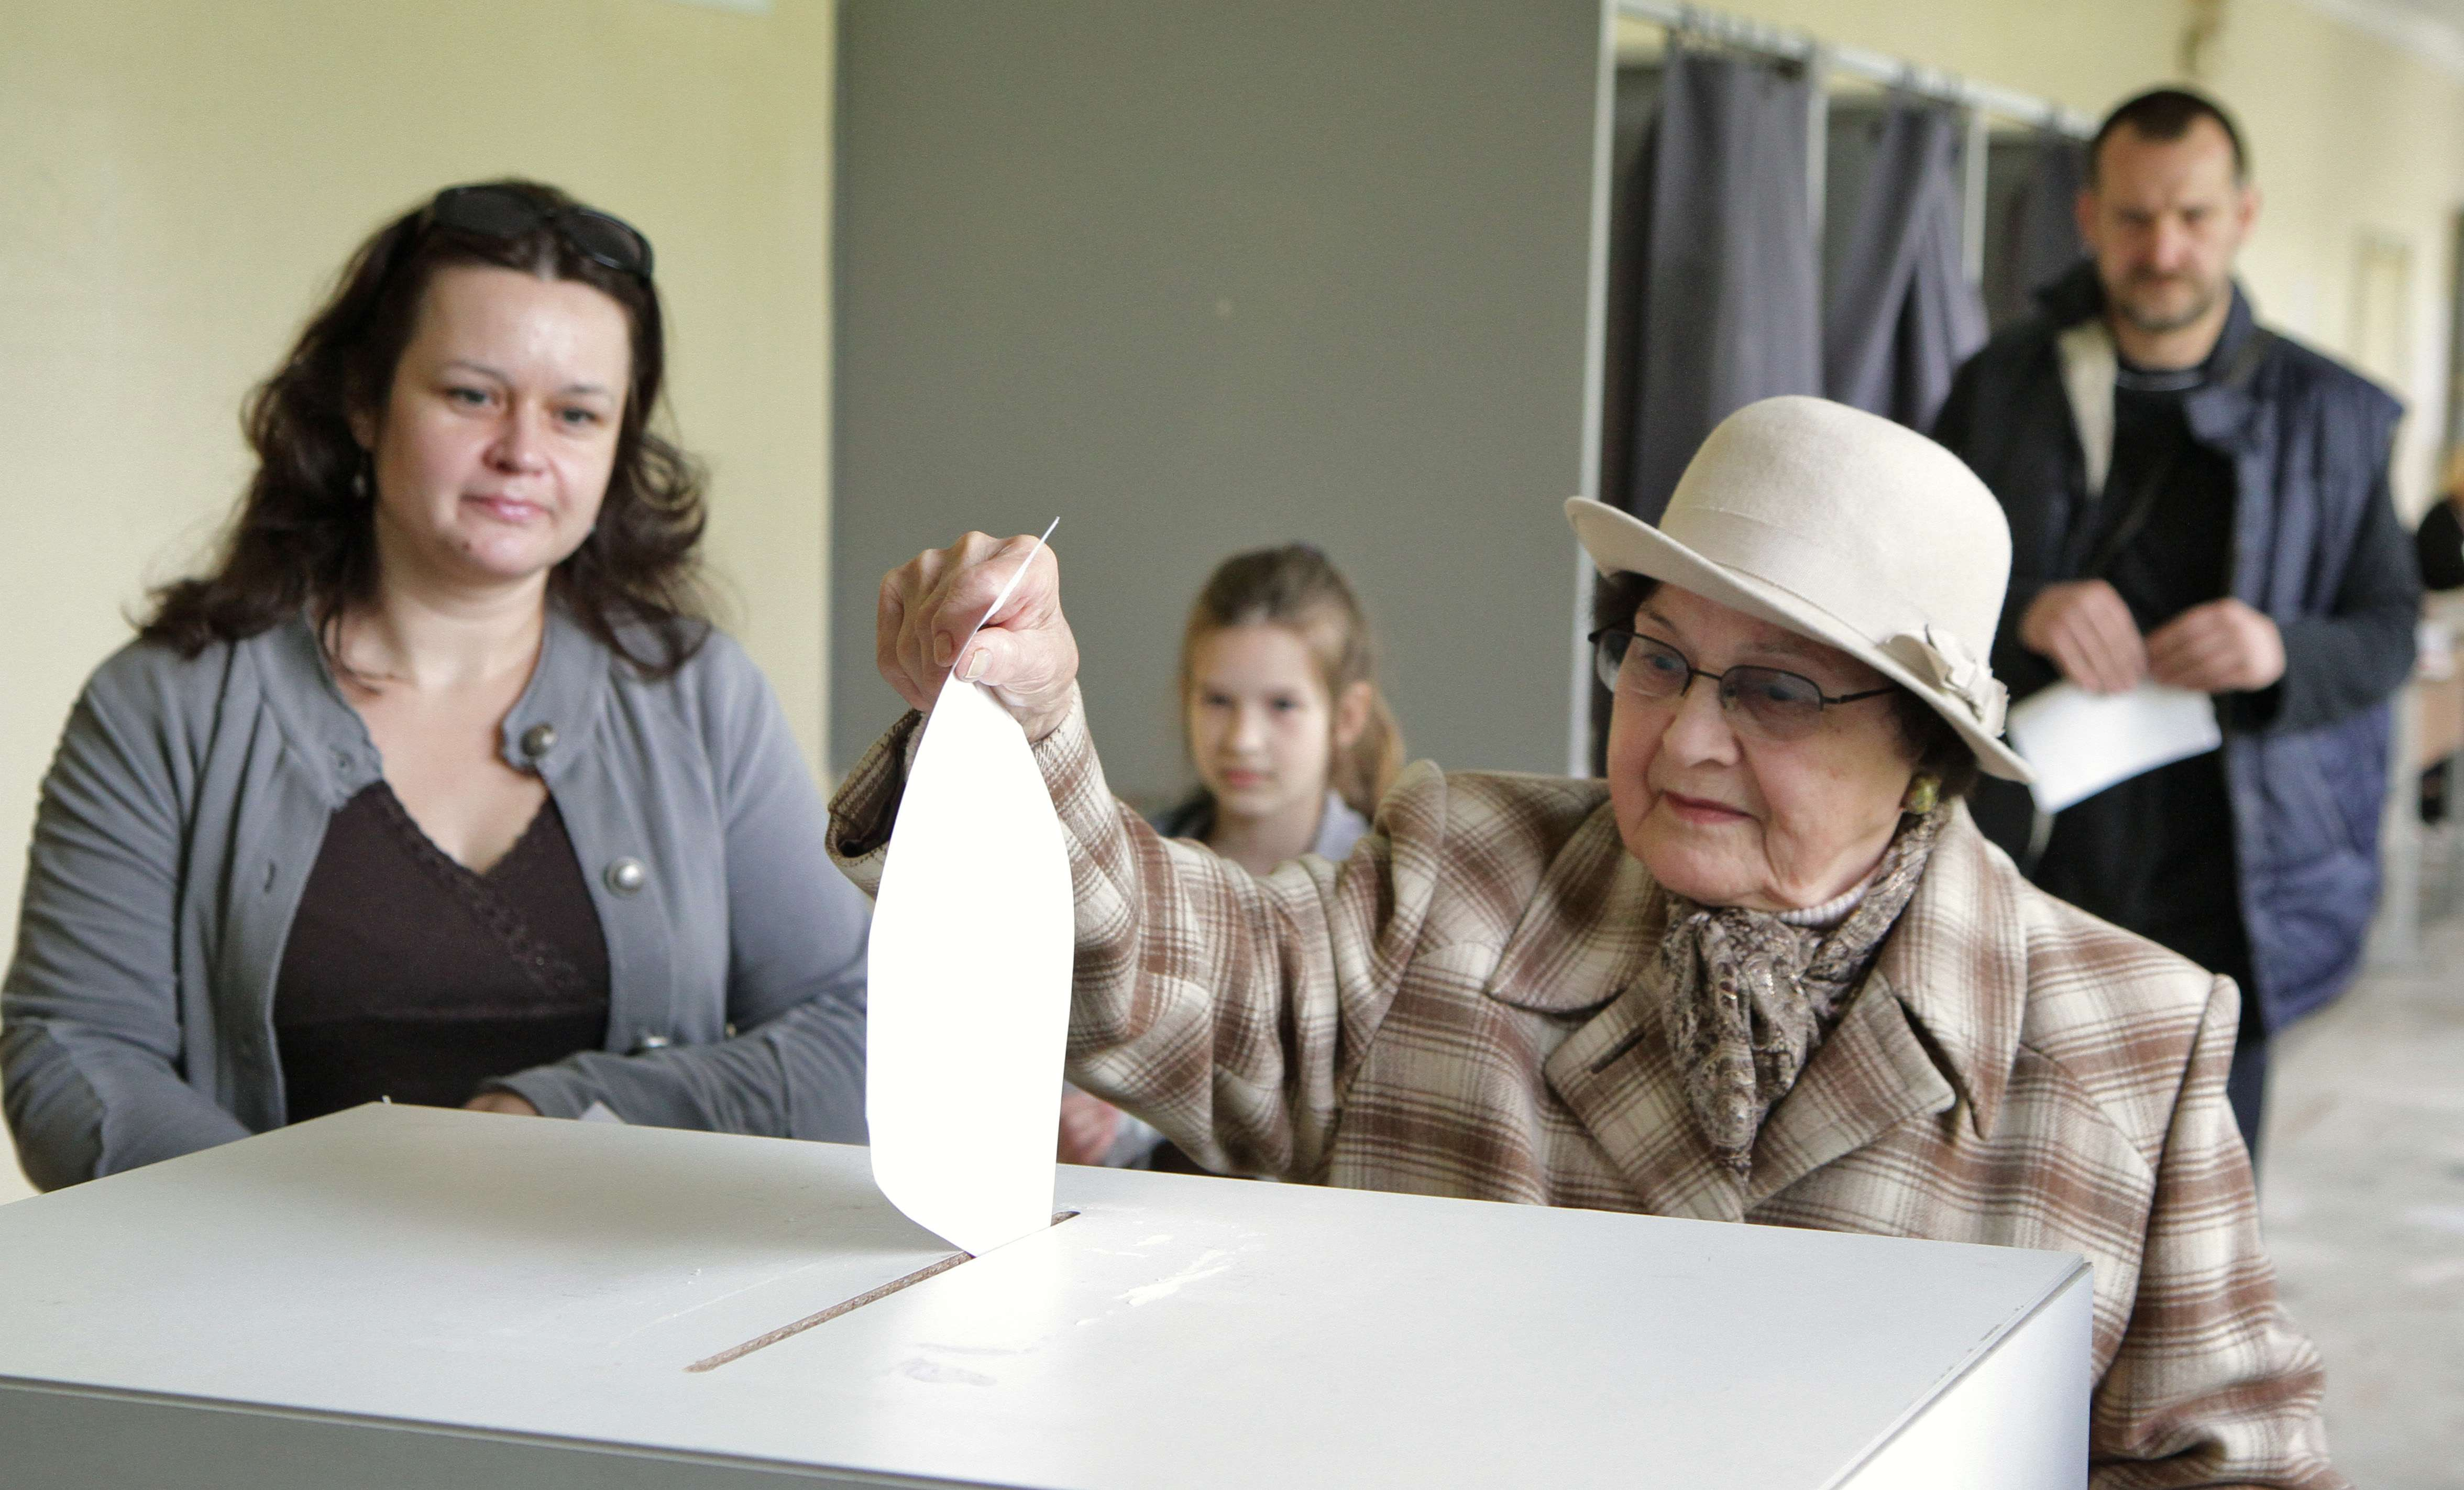 """A woman casts her ballot at a polling station during the presidential election in Vilnius on May 11, 2014. Lithuanians were voting Sunday to elect their president, with incumbent """"Iron Lady"""" Dalia Grybauskaite the favourite to win for her hard line on a resurgent Russia during the Ukraine crisis.  (AFP PHOTO / PETRAS MALUKAS)"""